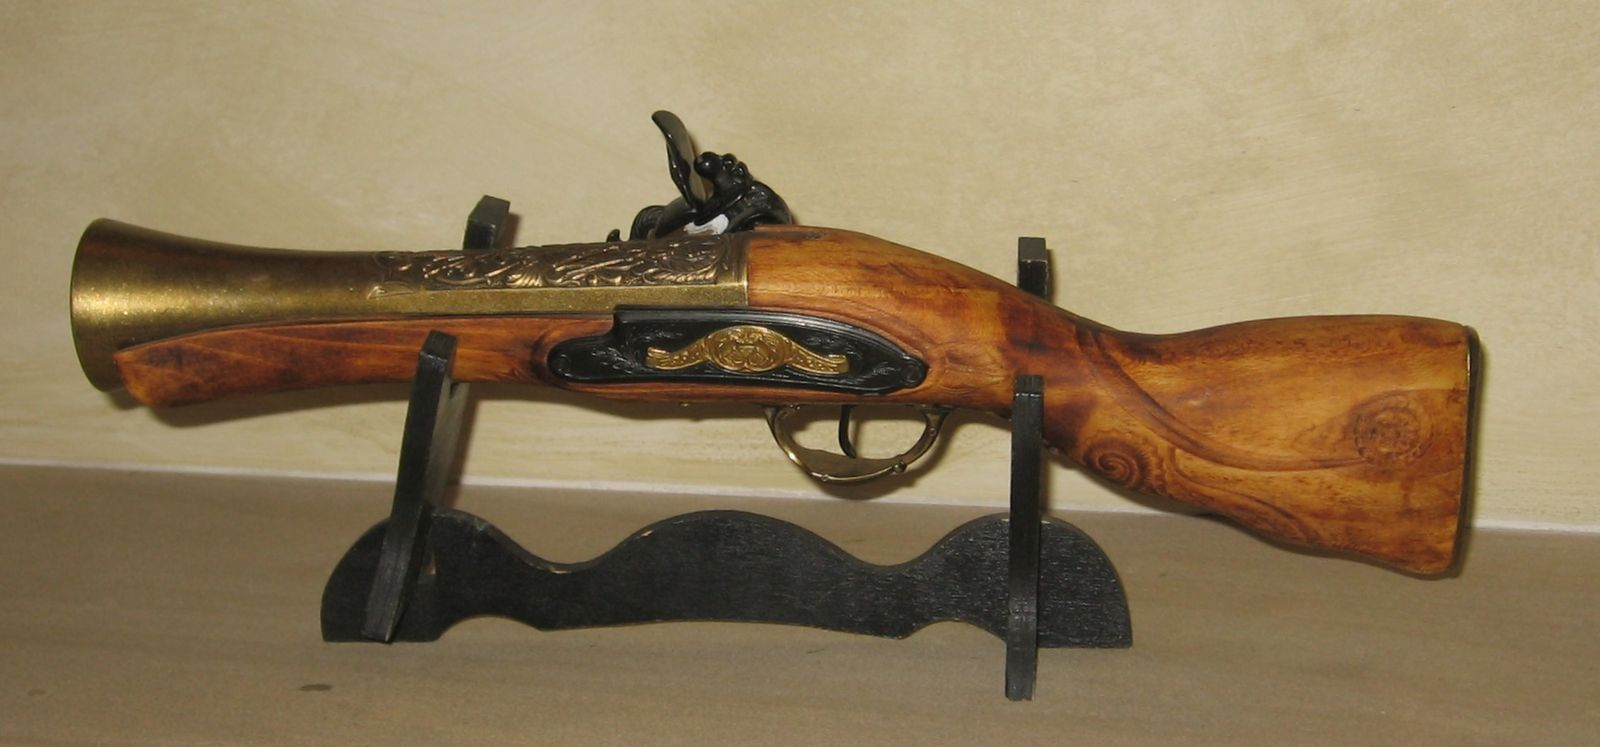 Replica of historical blunderbuss